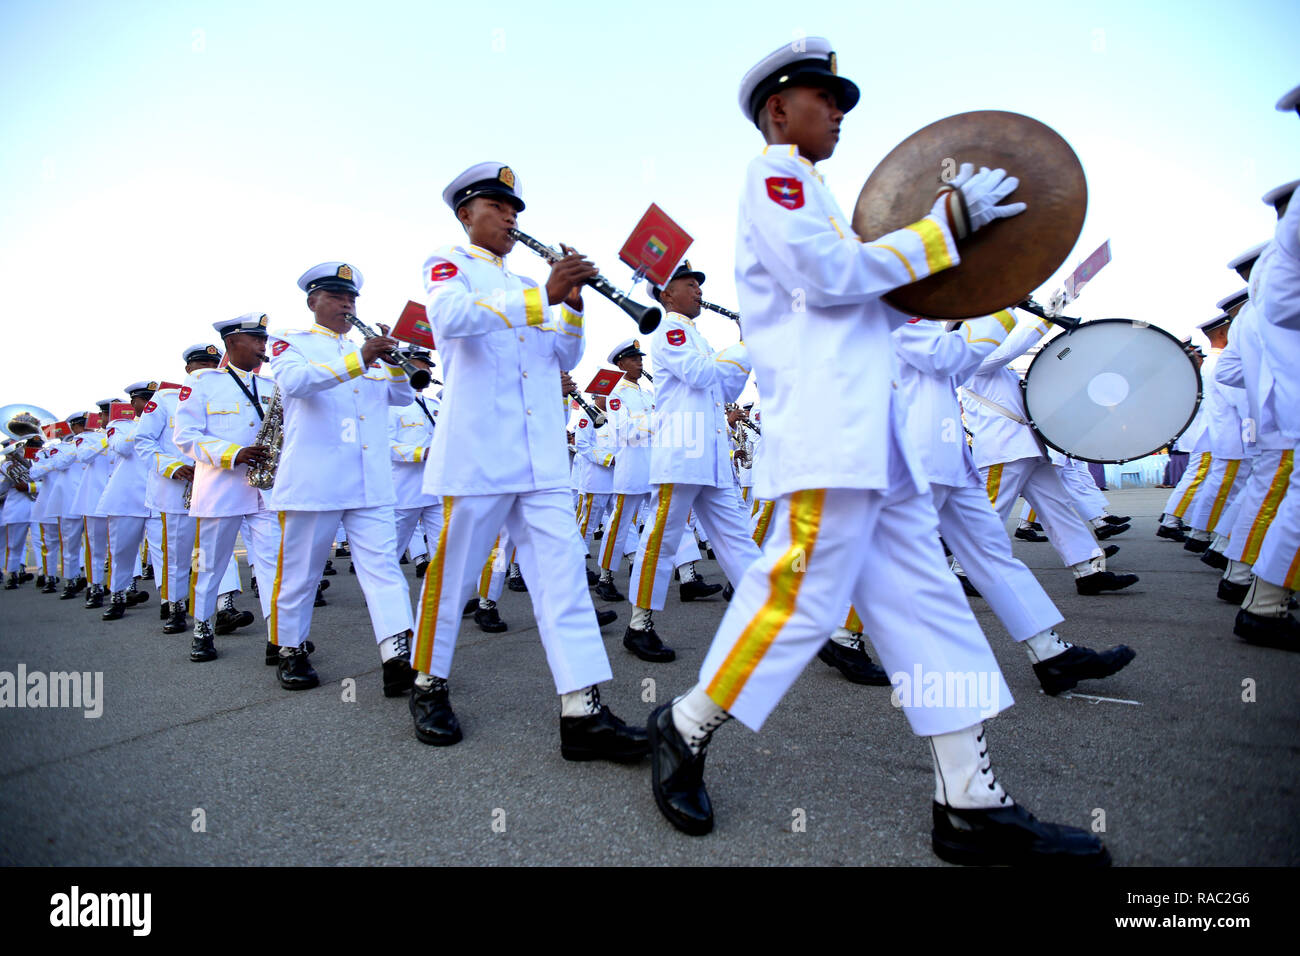 Nay Pyi Taw. 4th Jan, 2019. A military band performs during a ceremony to celebrate the 71st anniversary of Myanmar's independence in Nay Pyi Taw Jan. 4, 2019. Credit: U Aung/Xinhua/Alamy Live News - Stock Image